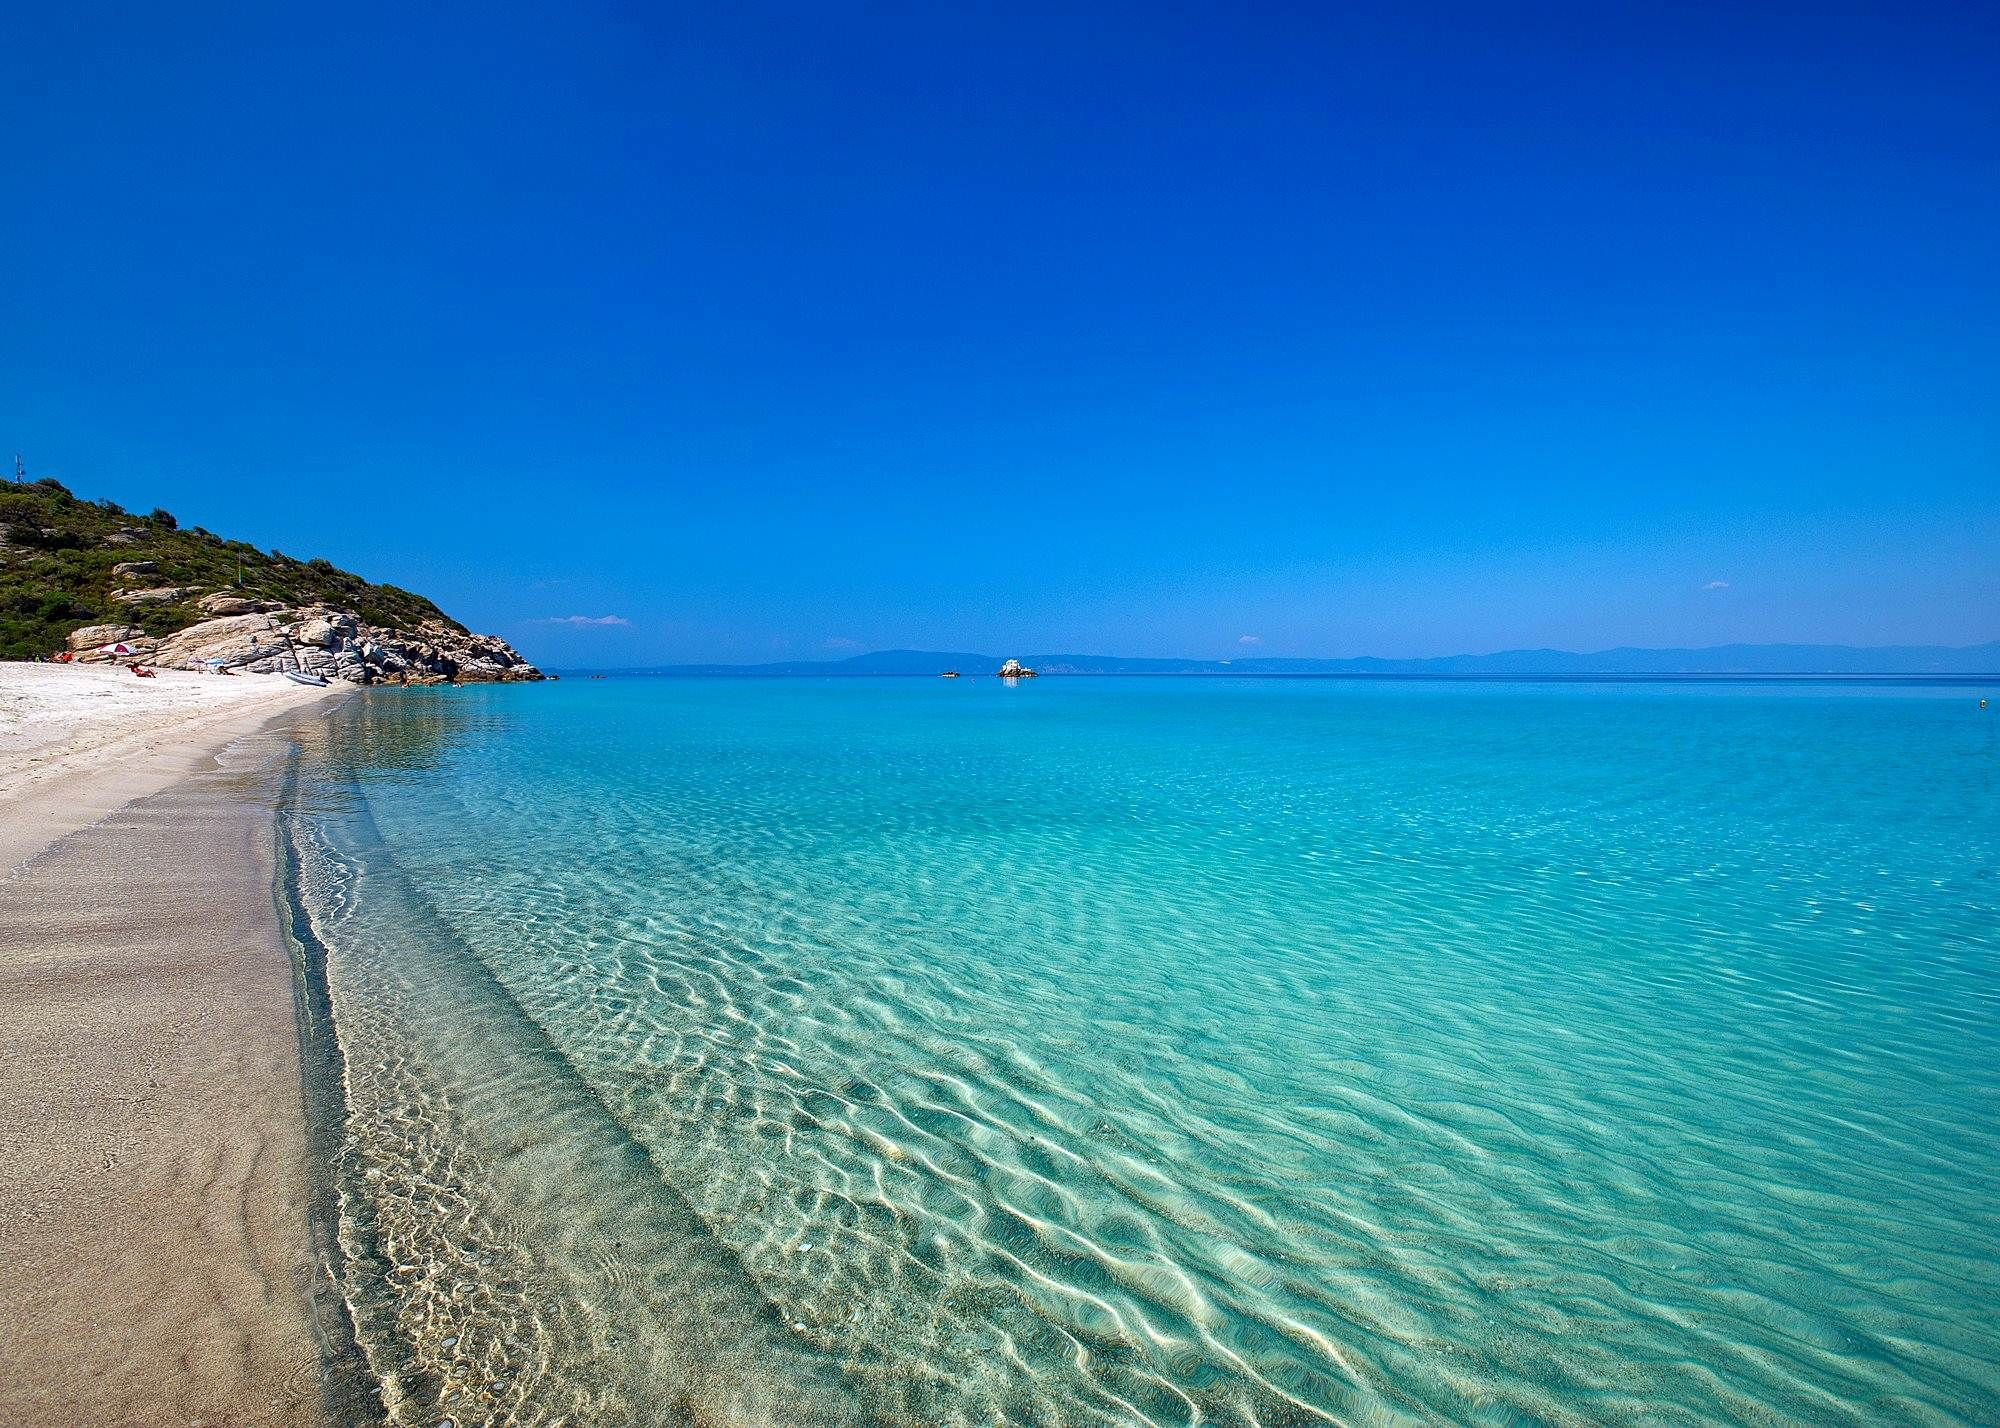 High Quality Summer Beach Paradise Wallpaper Hd Desktop | HD Wallpapers, HD Images, Art  Photos.